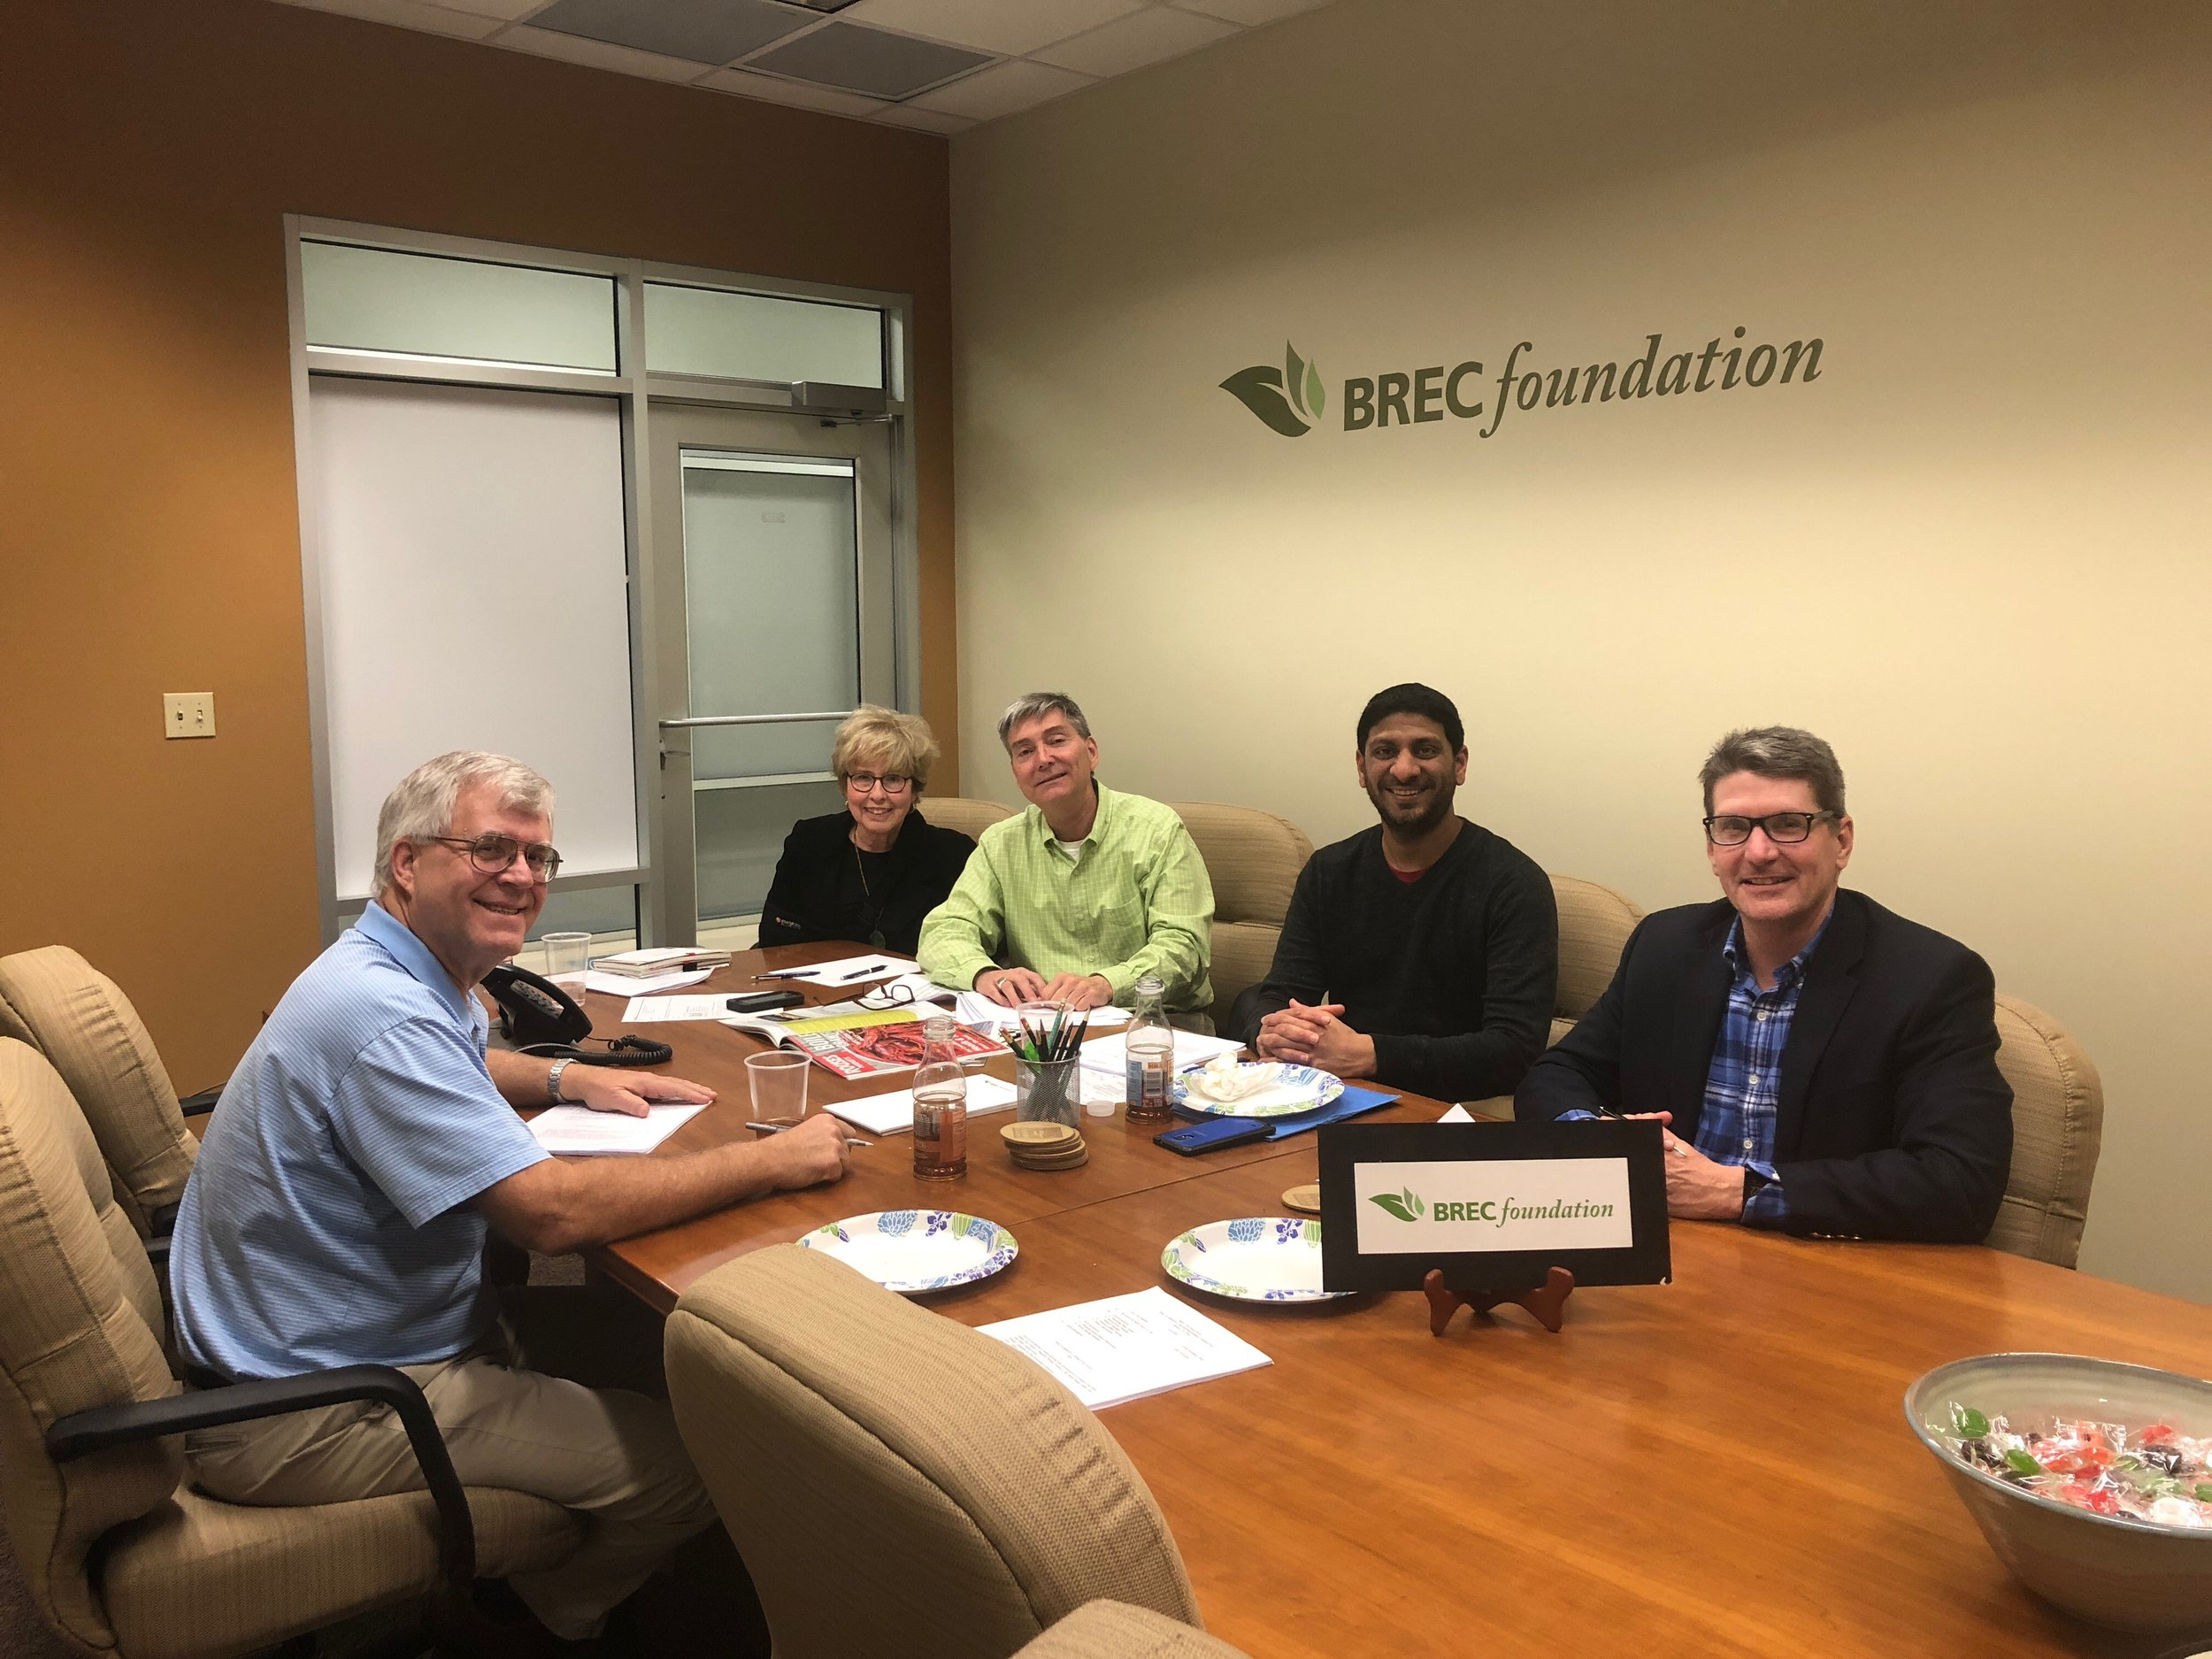 """""""Members of the Philanthropy Committee met on March 14, 2018 to discuss plans for donor recognition and possible special events. Pictured (from left, clockwise) are Marvin Borgmeyer, Anne Marks (Chair), Carl Stages (Executive Director), Hitesh Chheda and Marcel Dupre'."""""""